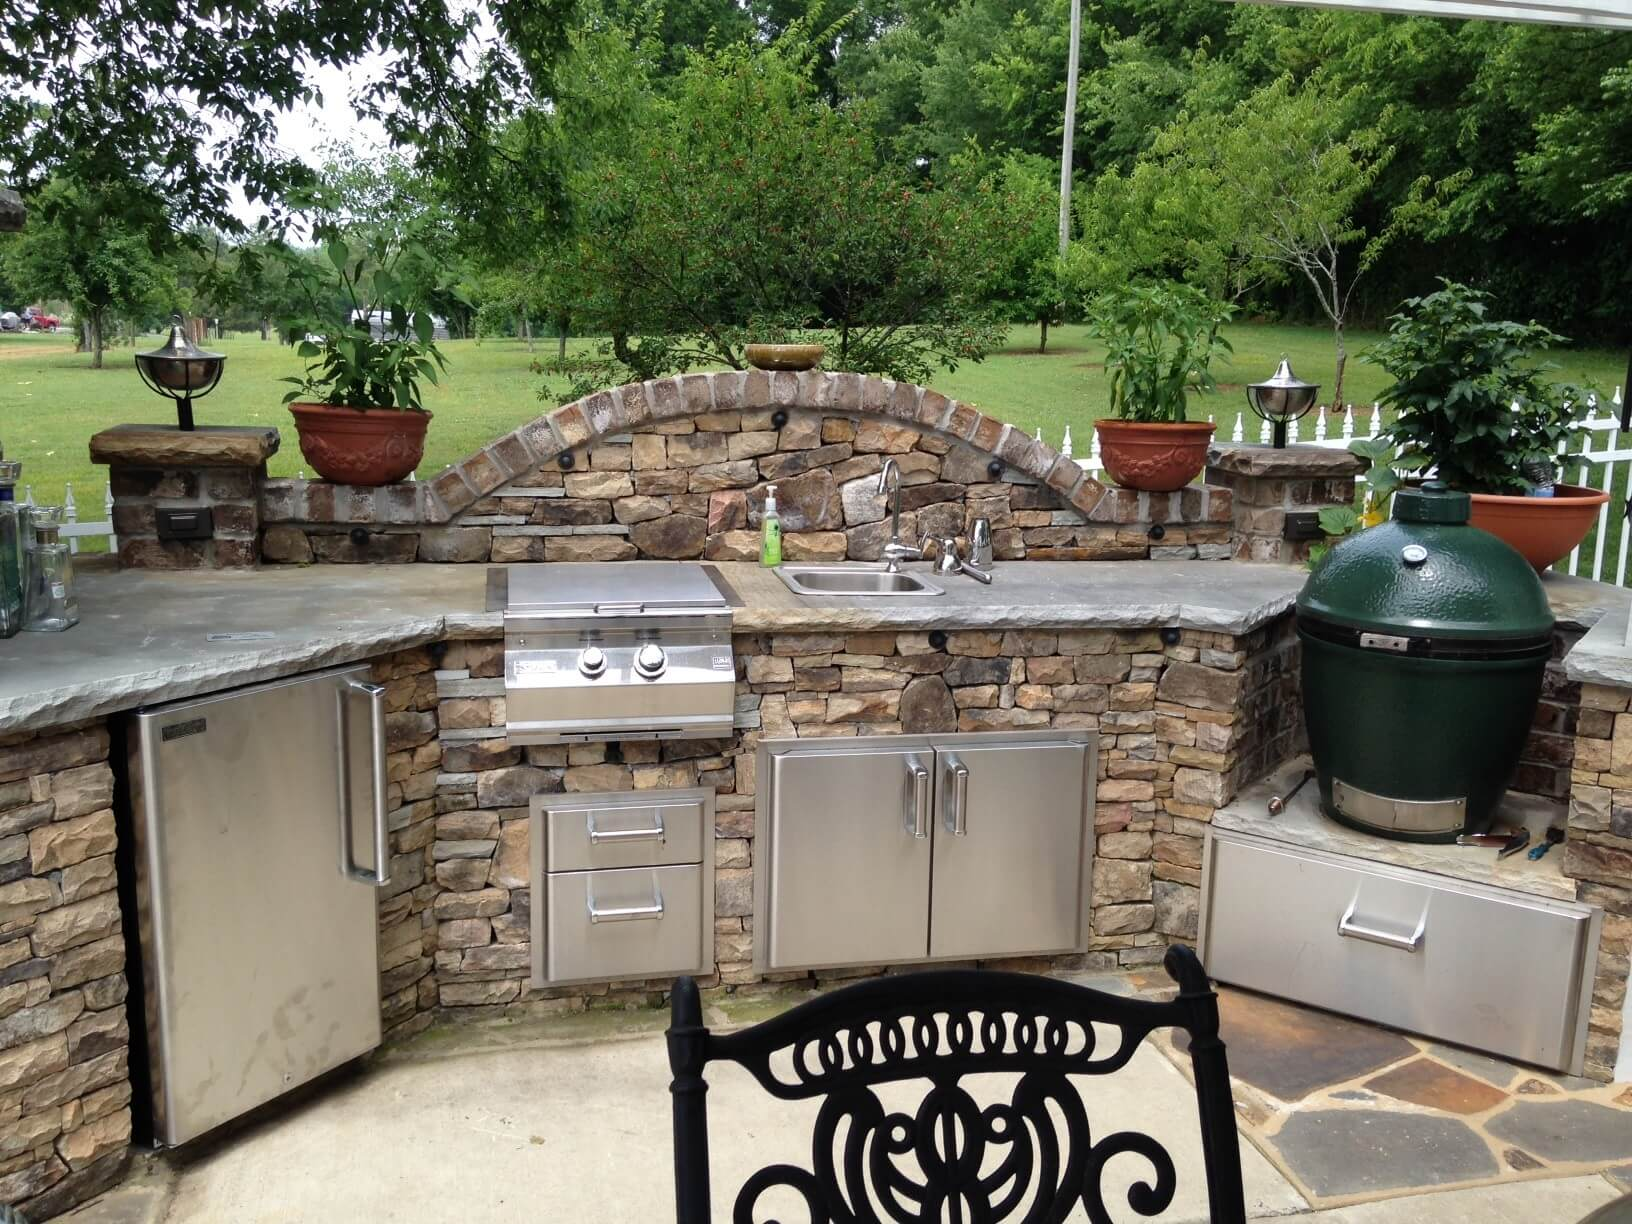 Outdoor Kitchen Cabinet Ideas 17 Functional And Practical Outdoor Kitchen Design Ideas